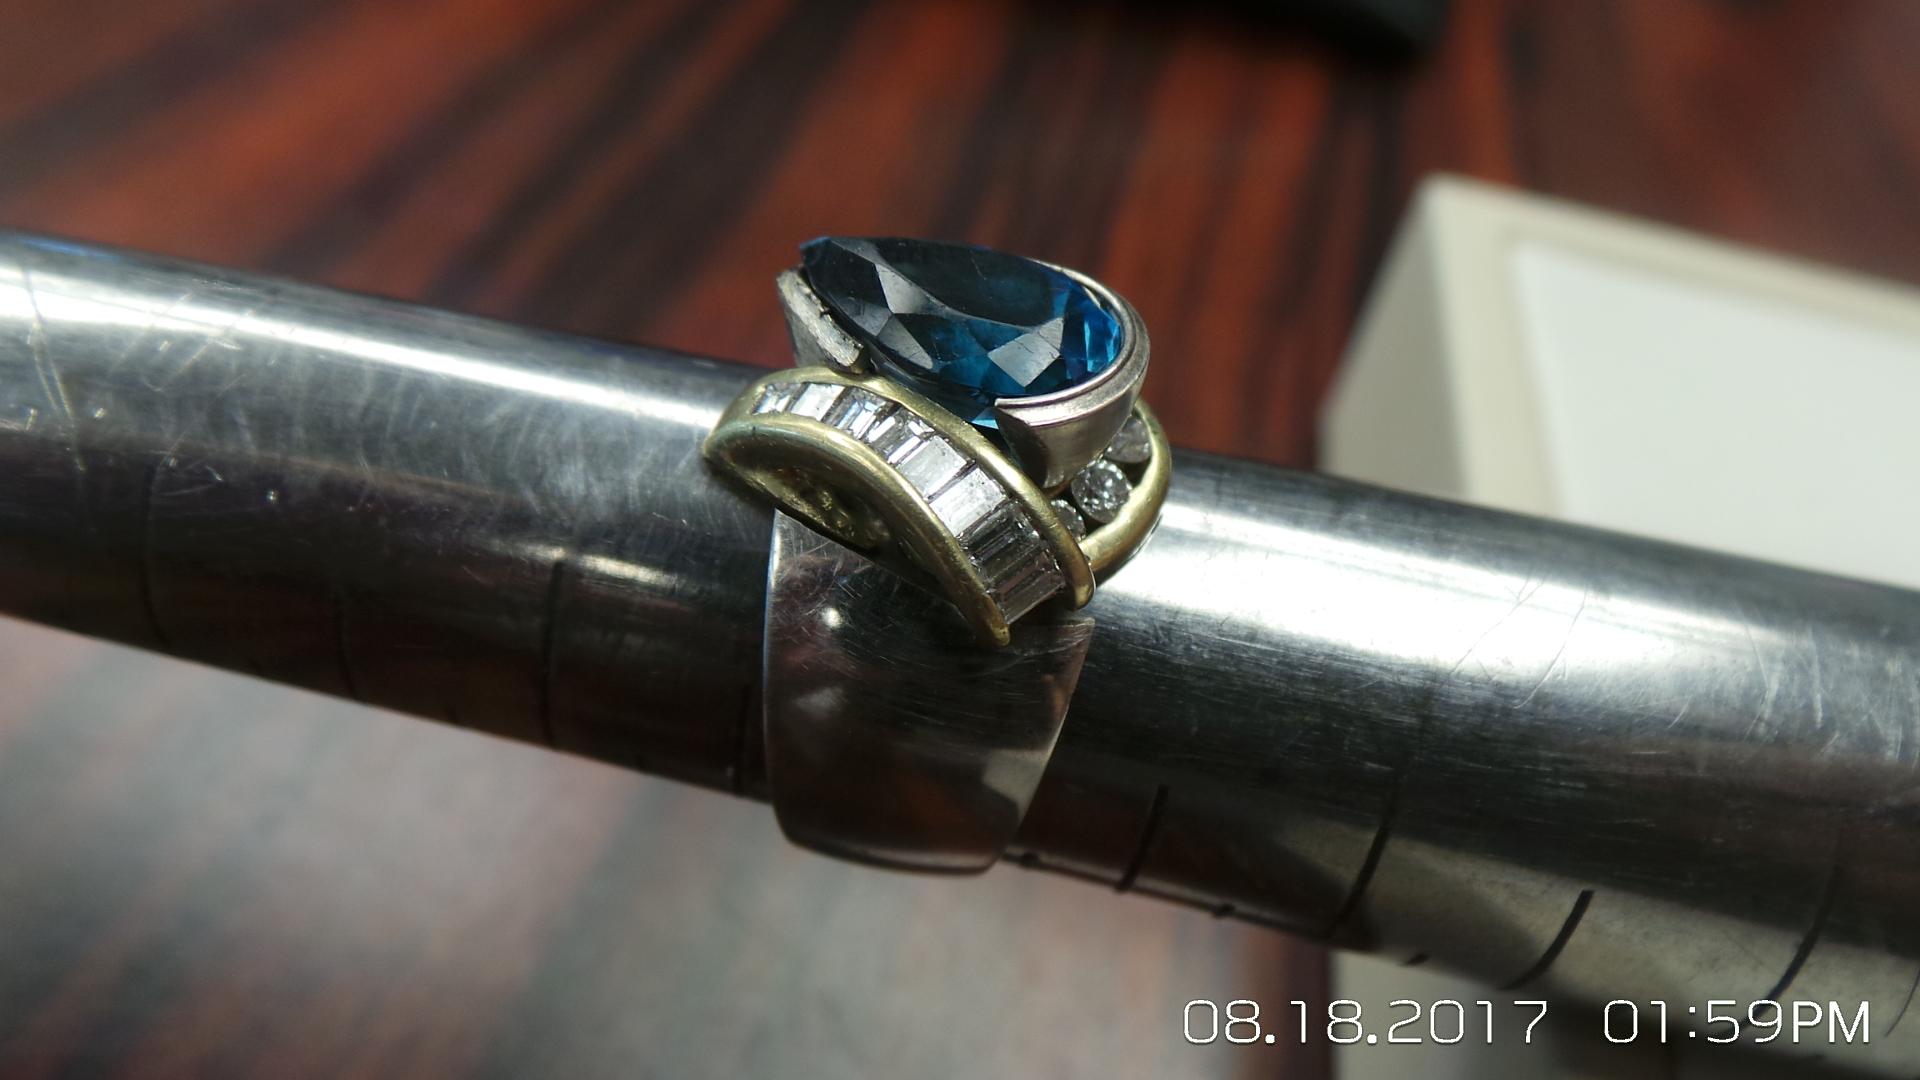 This is the mock up with the customized half bezel holding the blue topaz stone